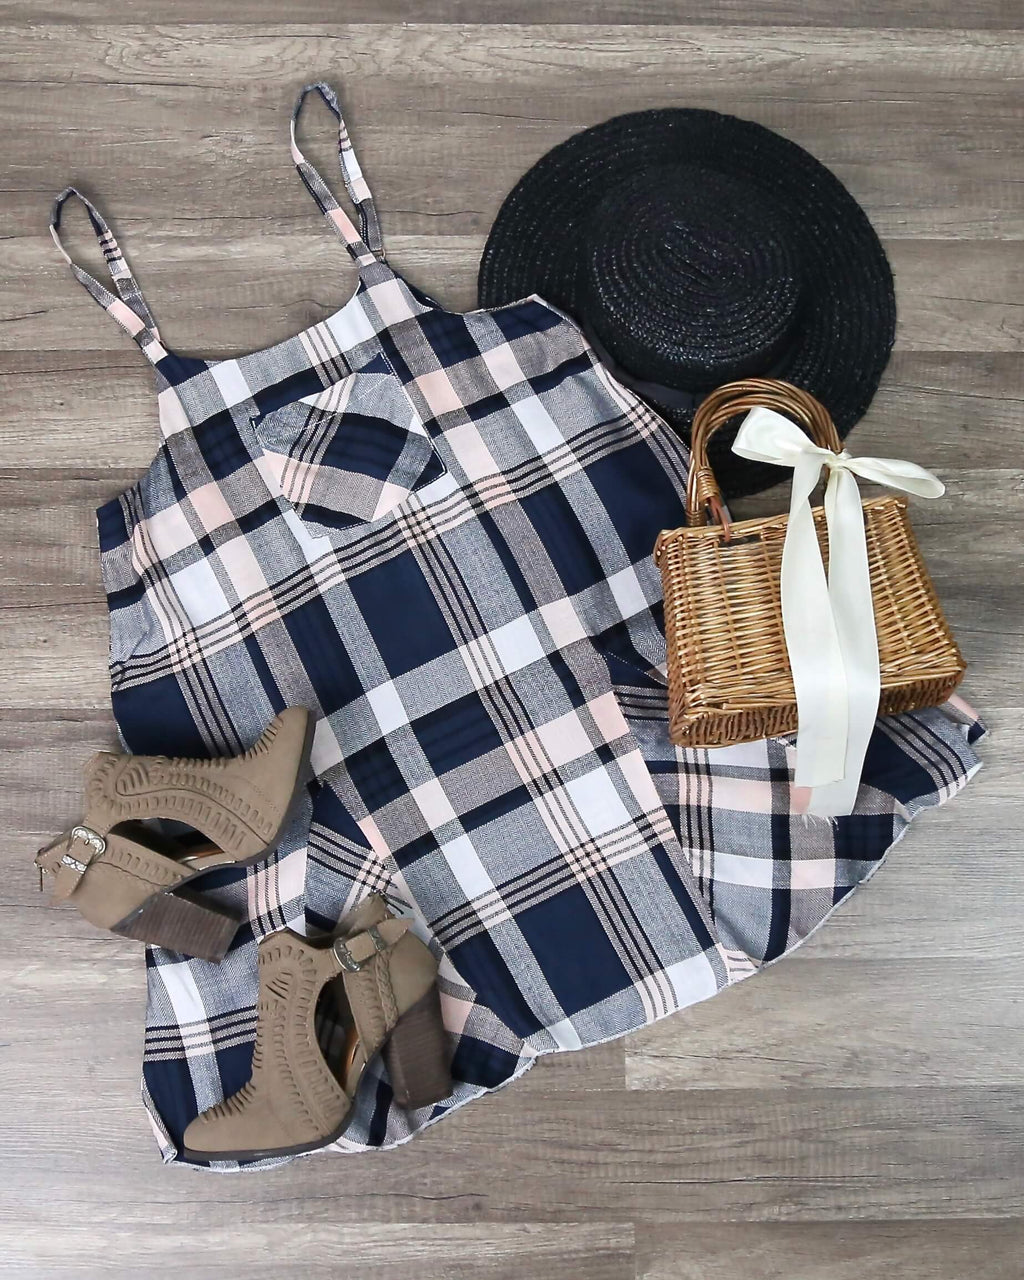 Final Sale - Somedays Lovin - Morning Rain Pinafore Plaid Dress in Multi